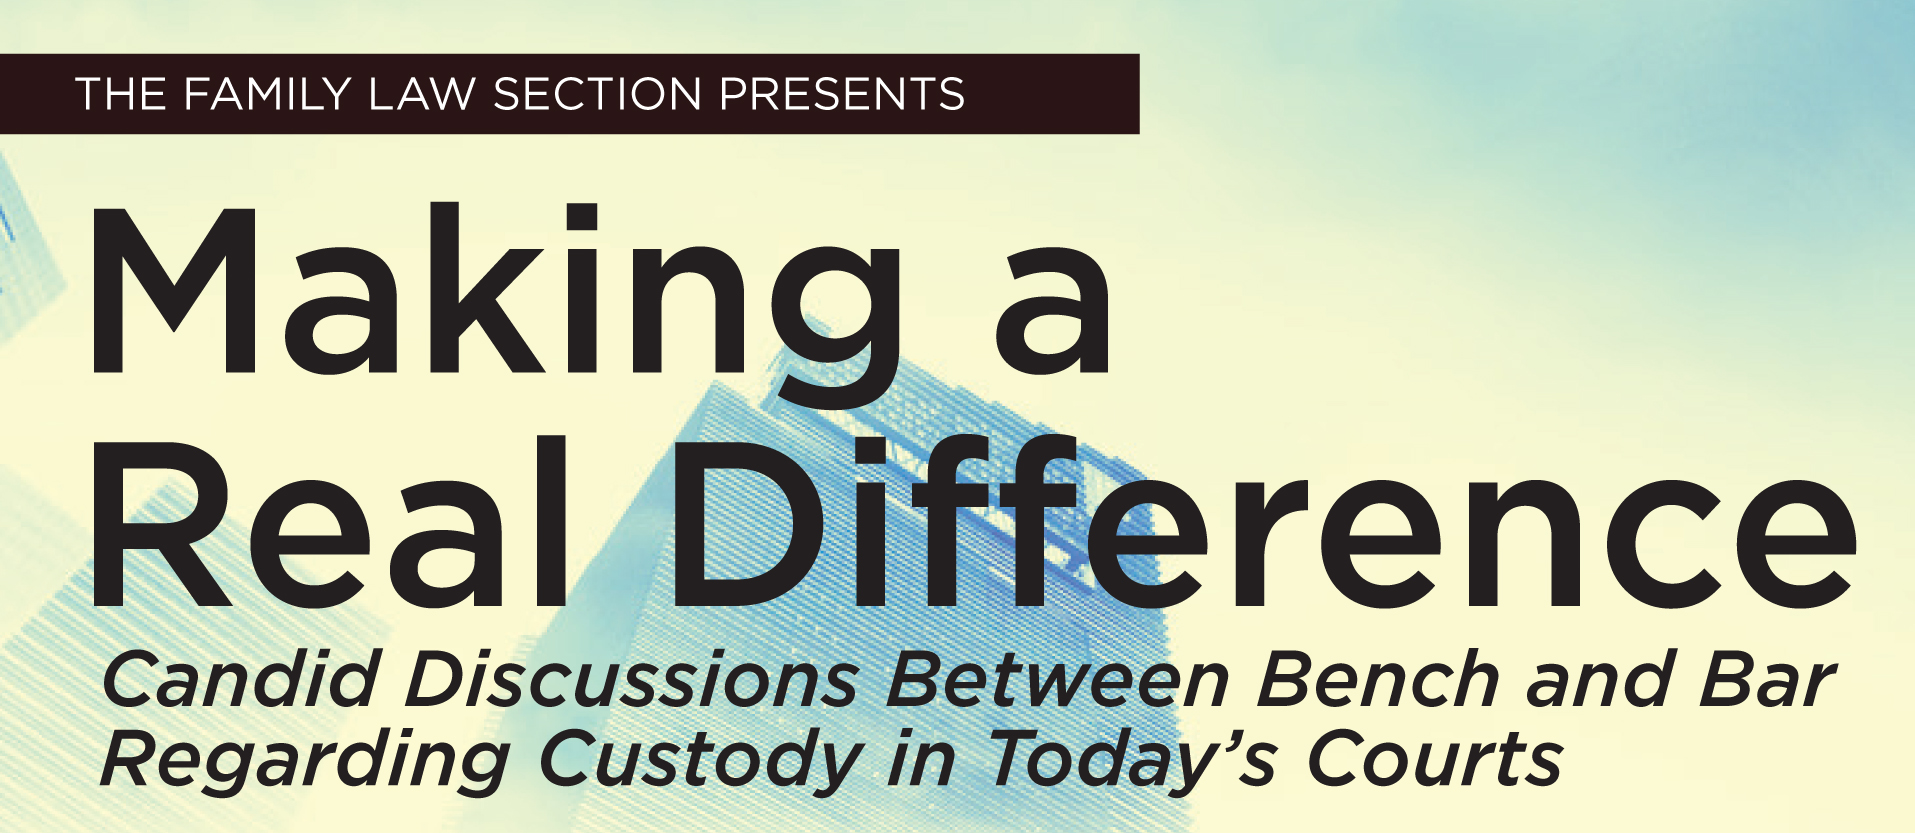 Making a Real Difference: Candid Discussions Between Bench and Bar Regarding Custody in Today's Courts